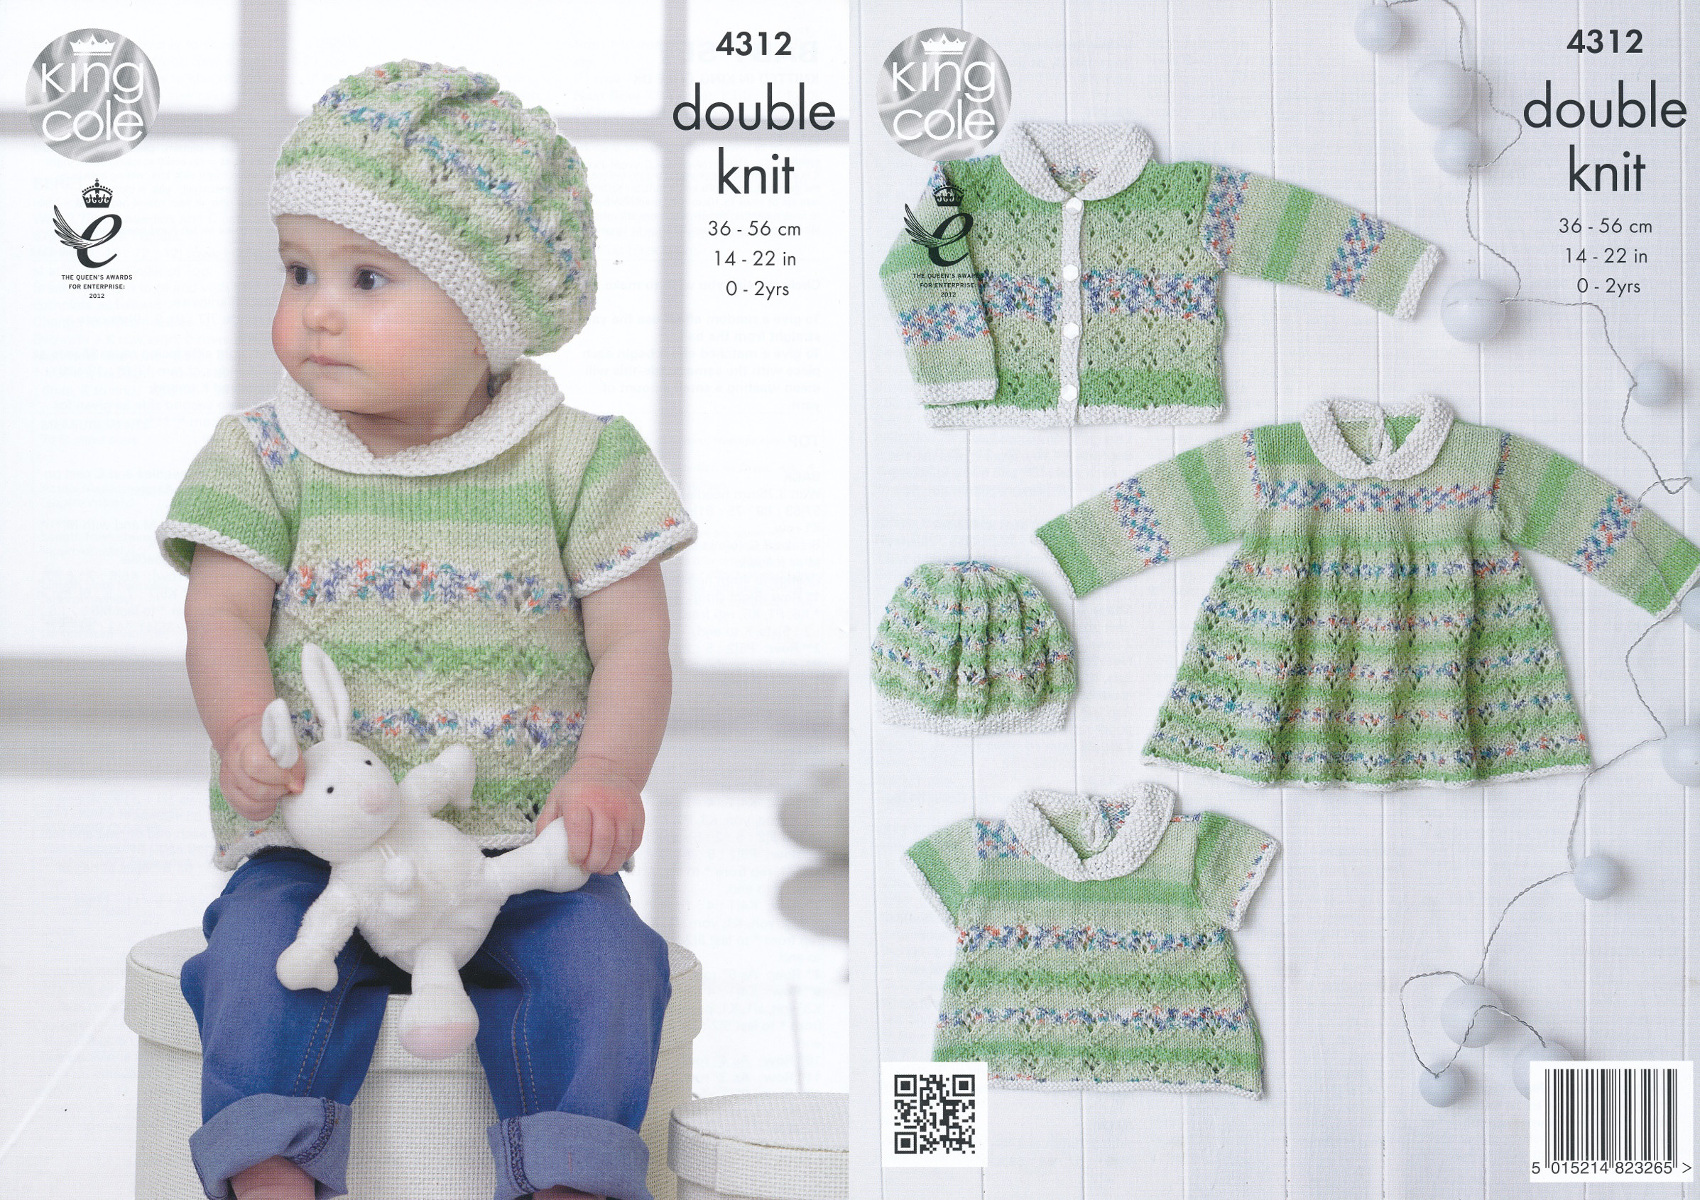 King Cole Knitting Pattern 5562~Layette in Easy Lace~4ply~12-20/""